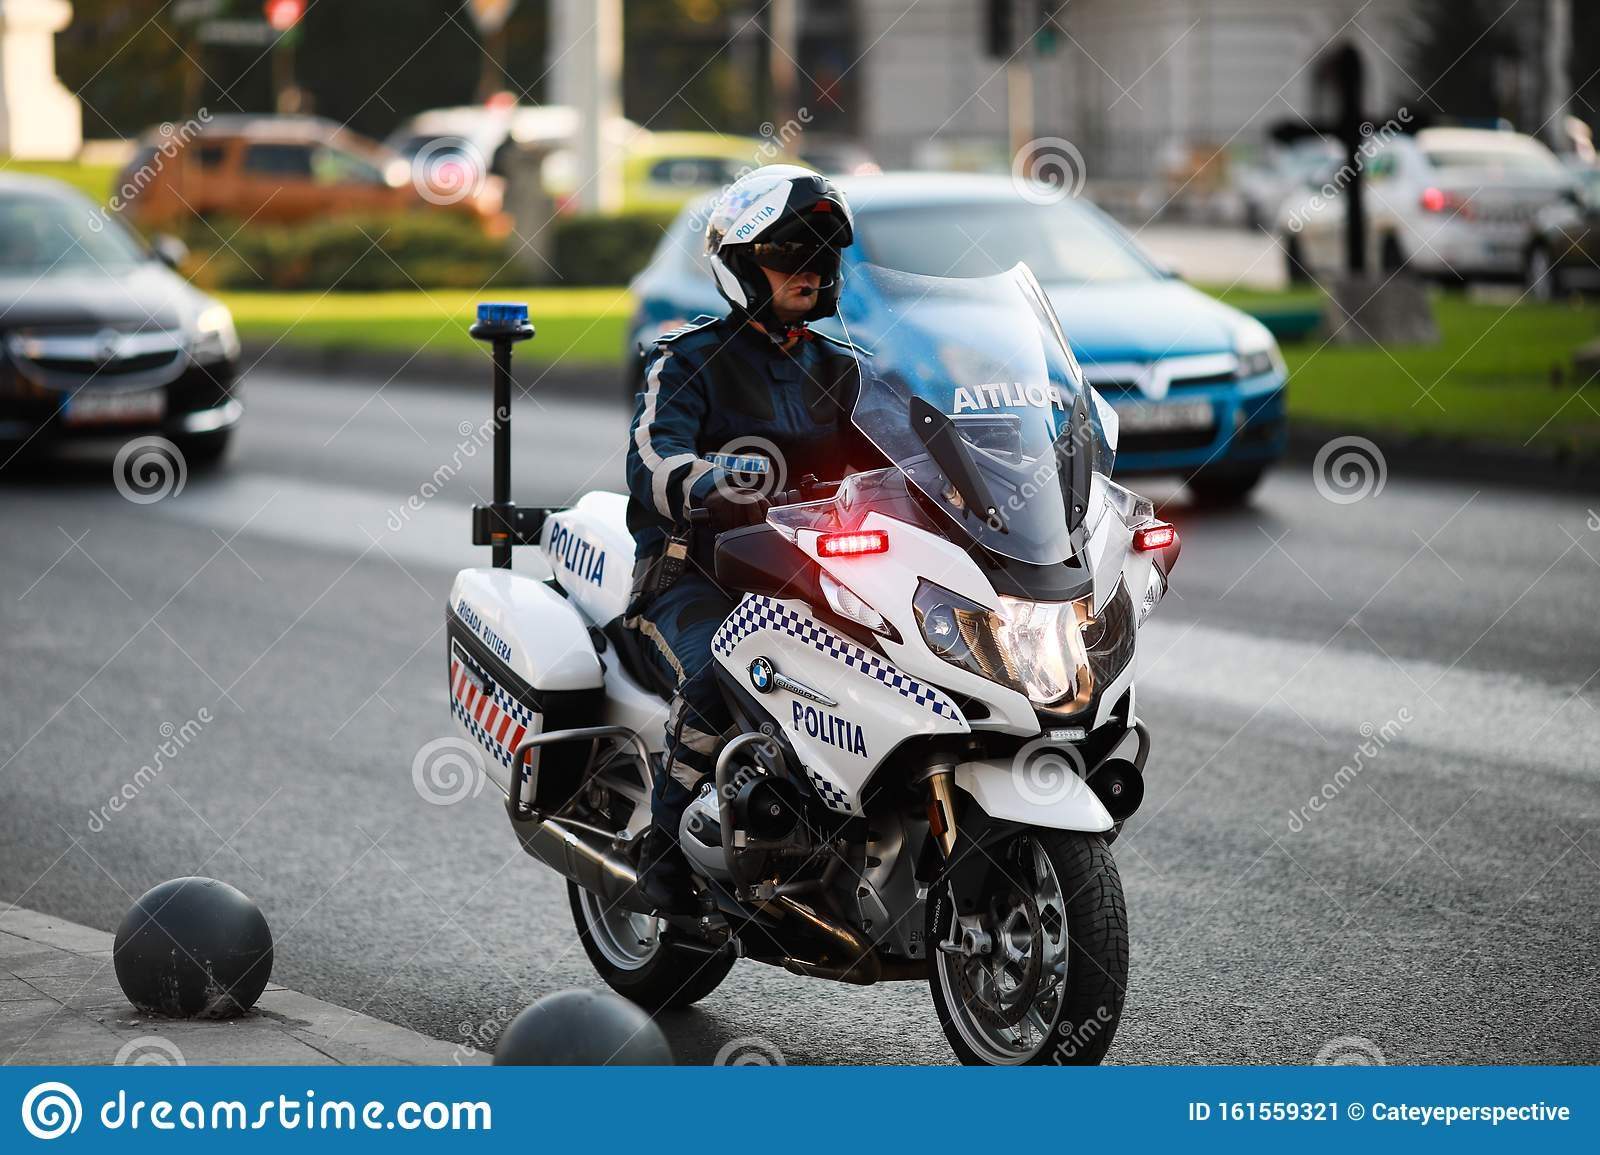 Police Officer Riding A Bmw Motorcycle In The Bucharest City Traffic Editorial Photo Image Of Masked Agent 161559321